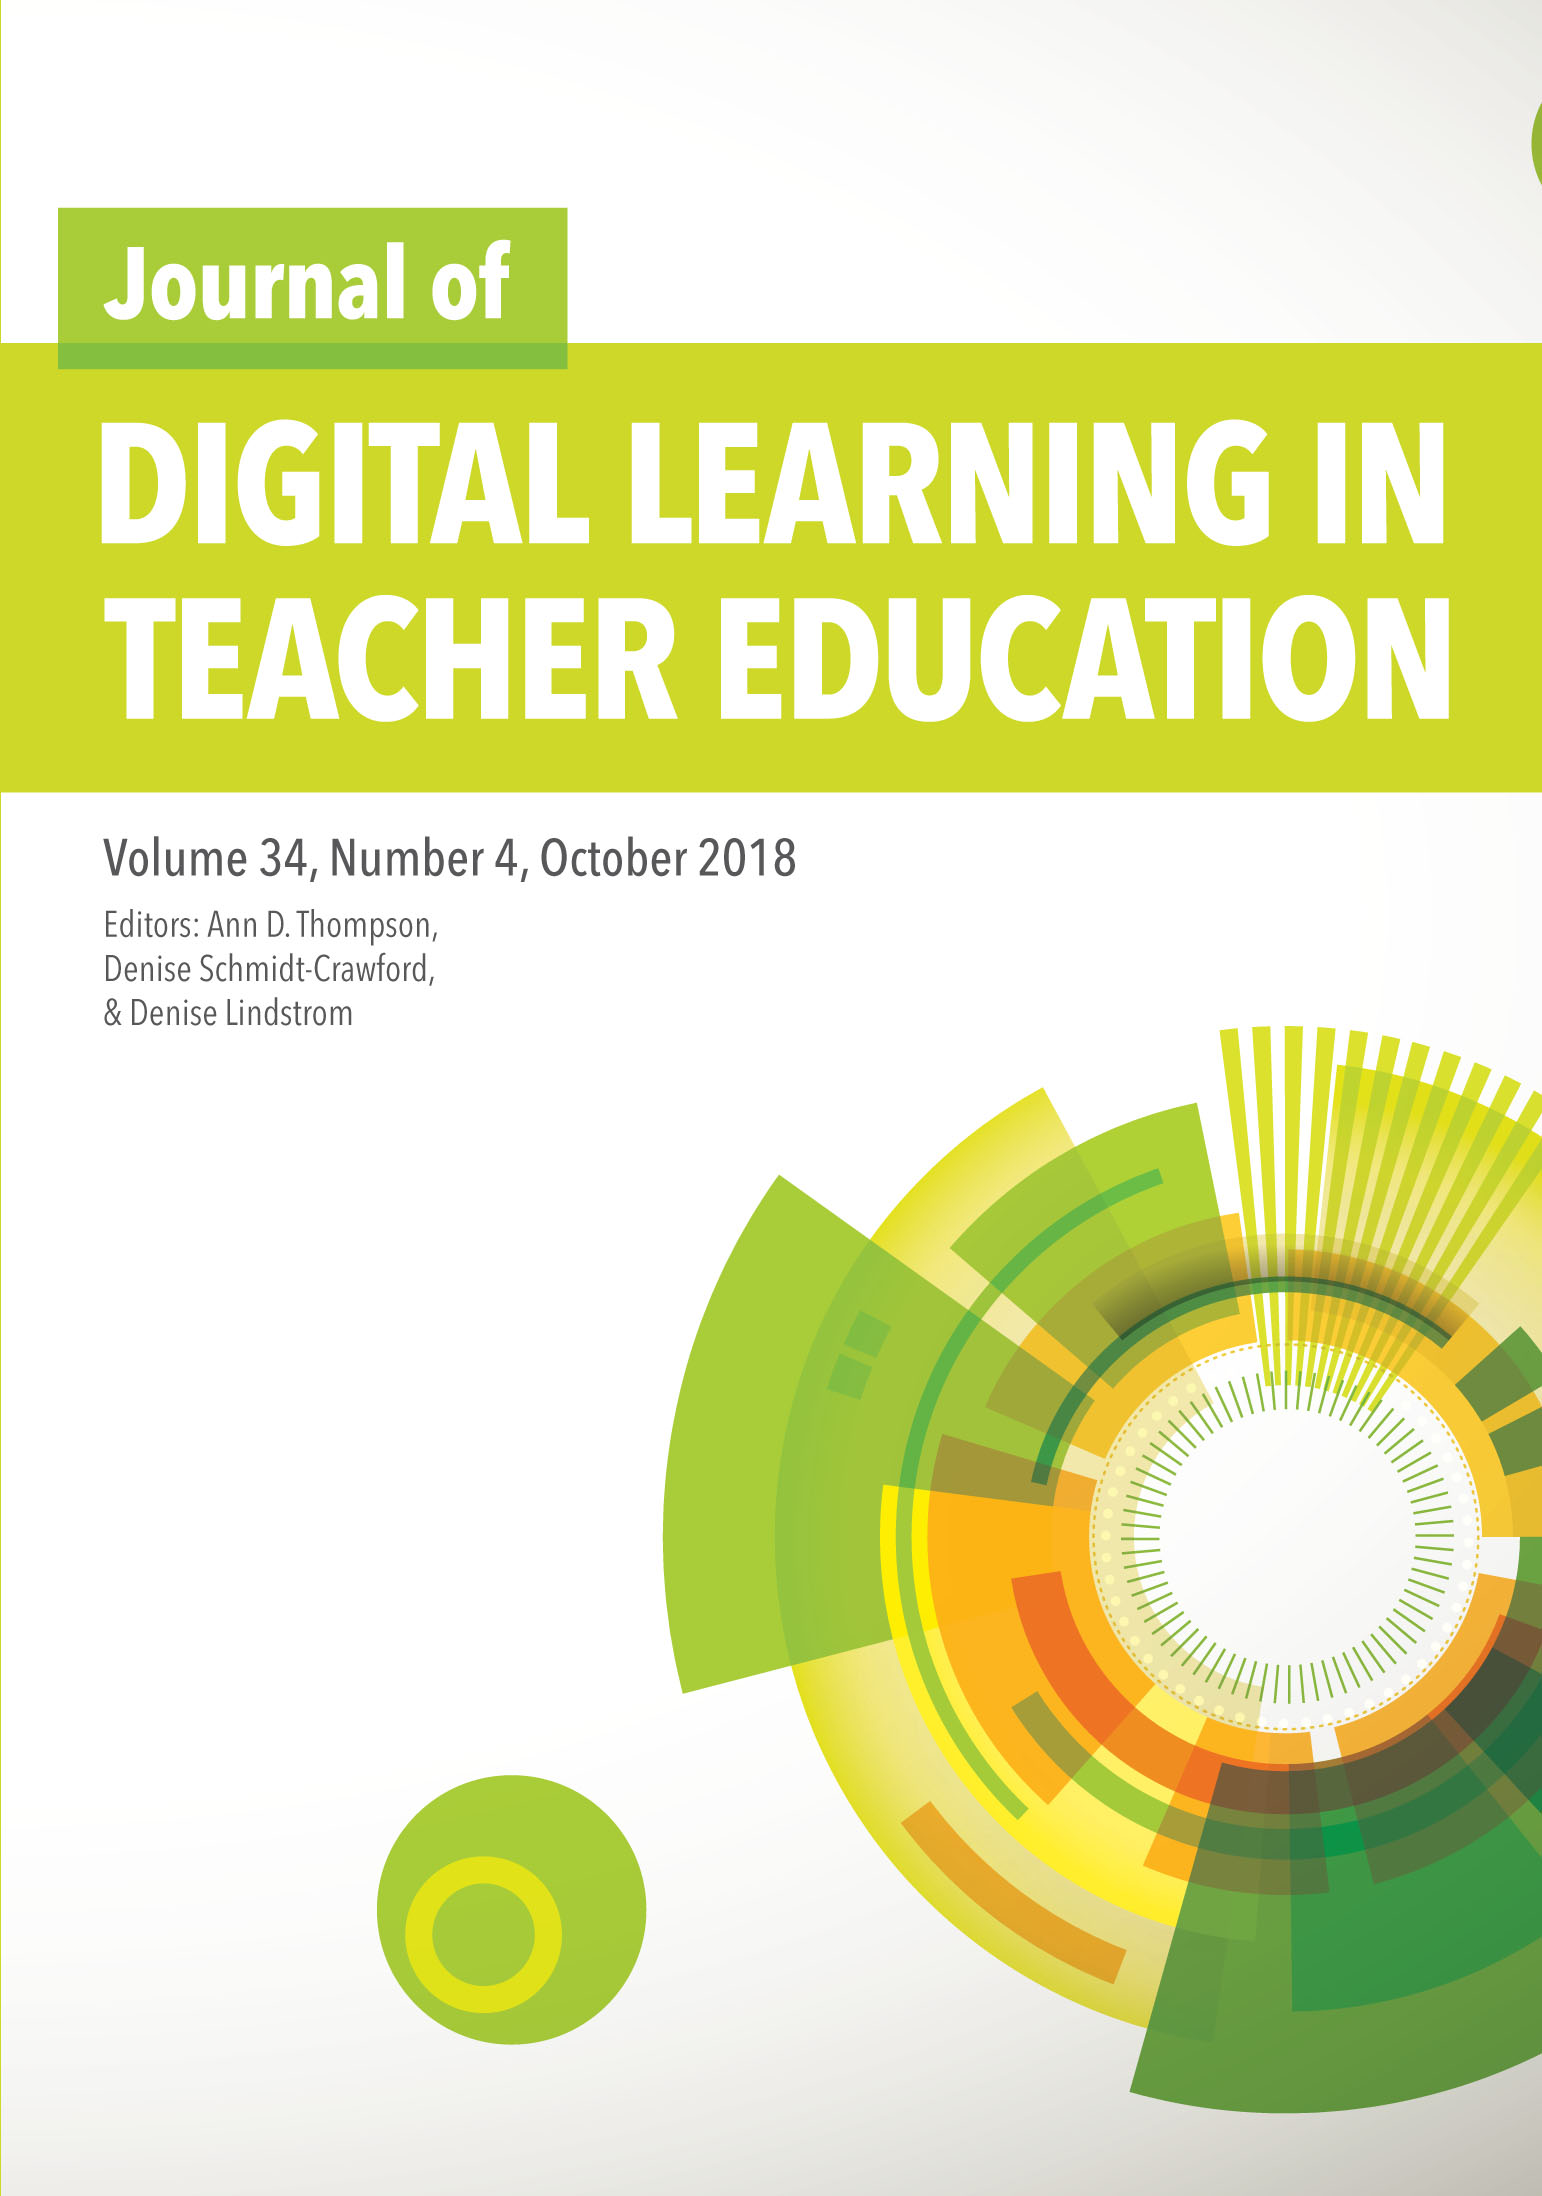 Full Article Using The Addie Model And Universal Design For Learning Principles To Develop An Open Online Course For Teacher Professional Development